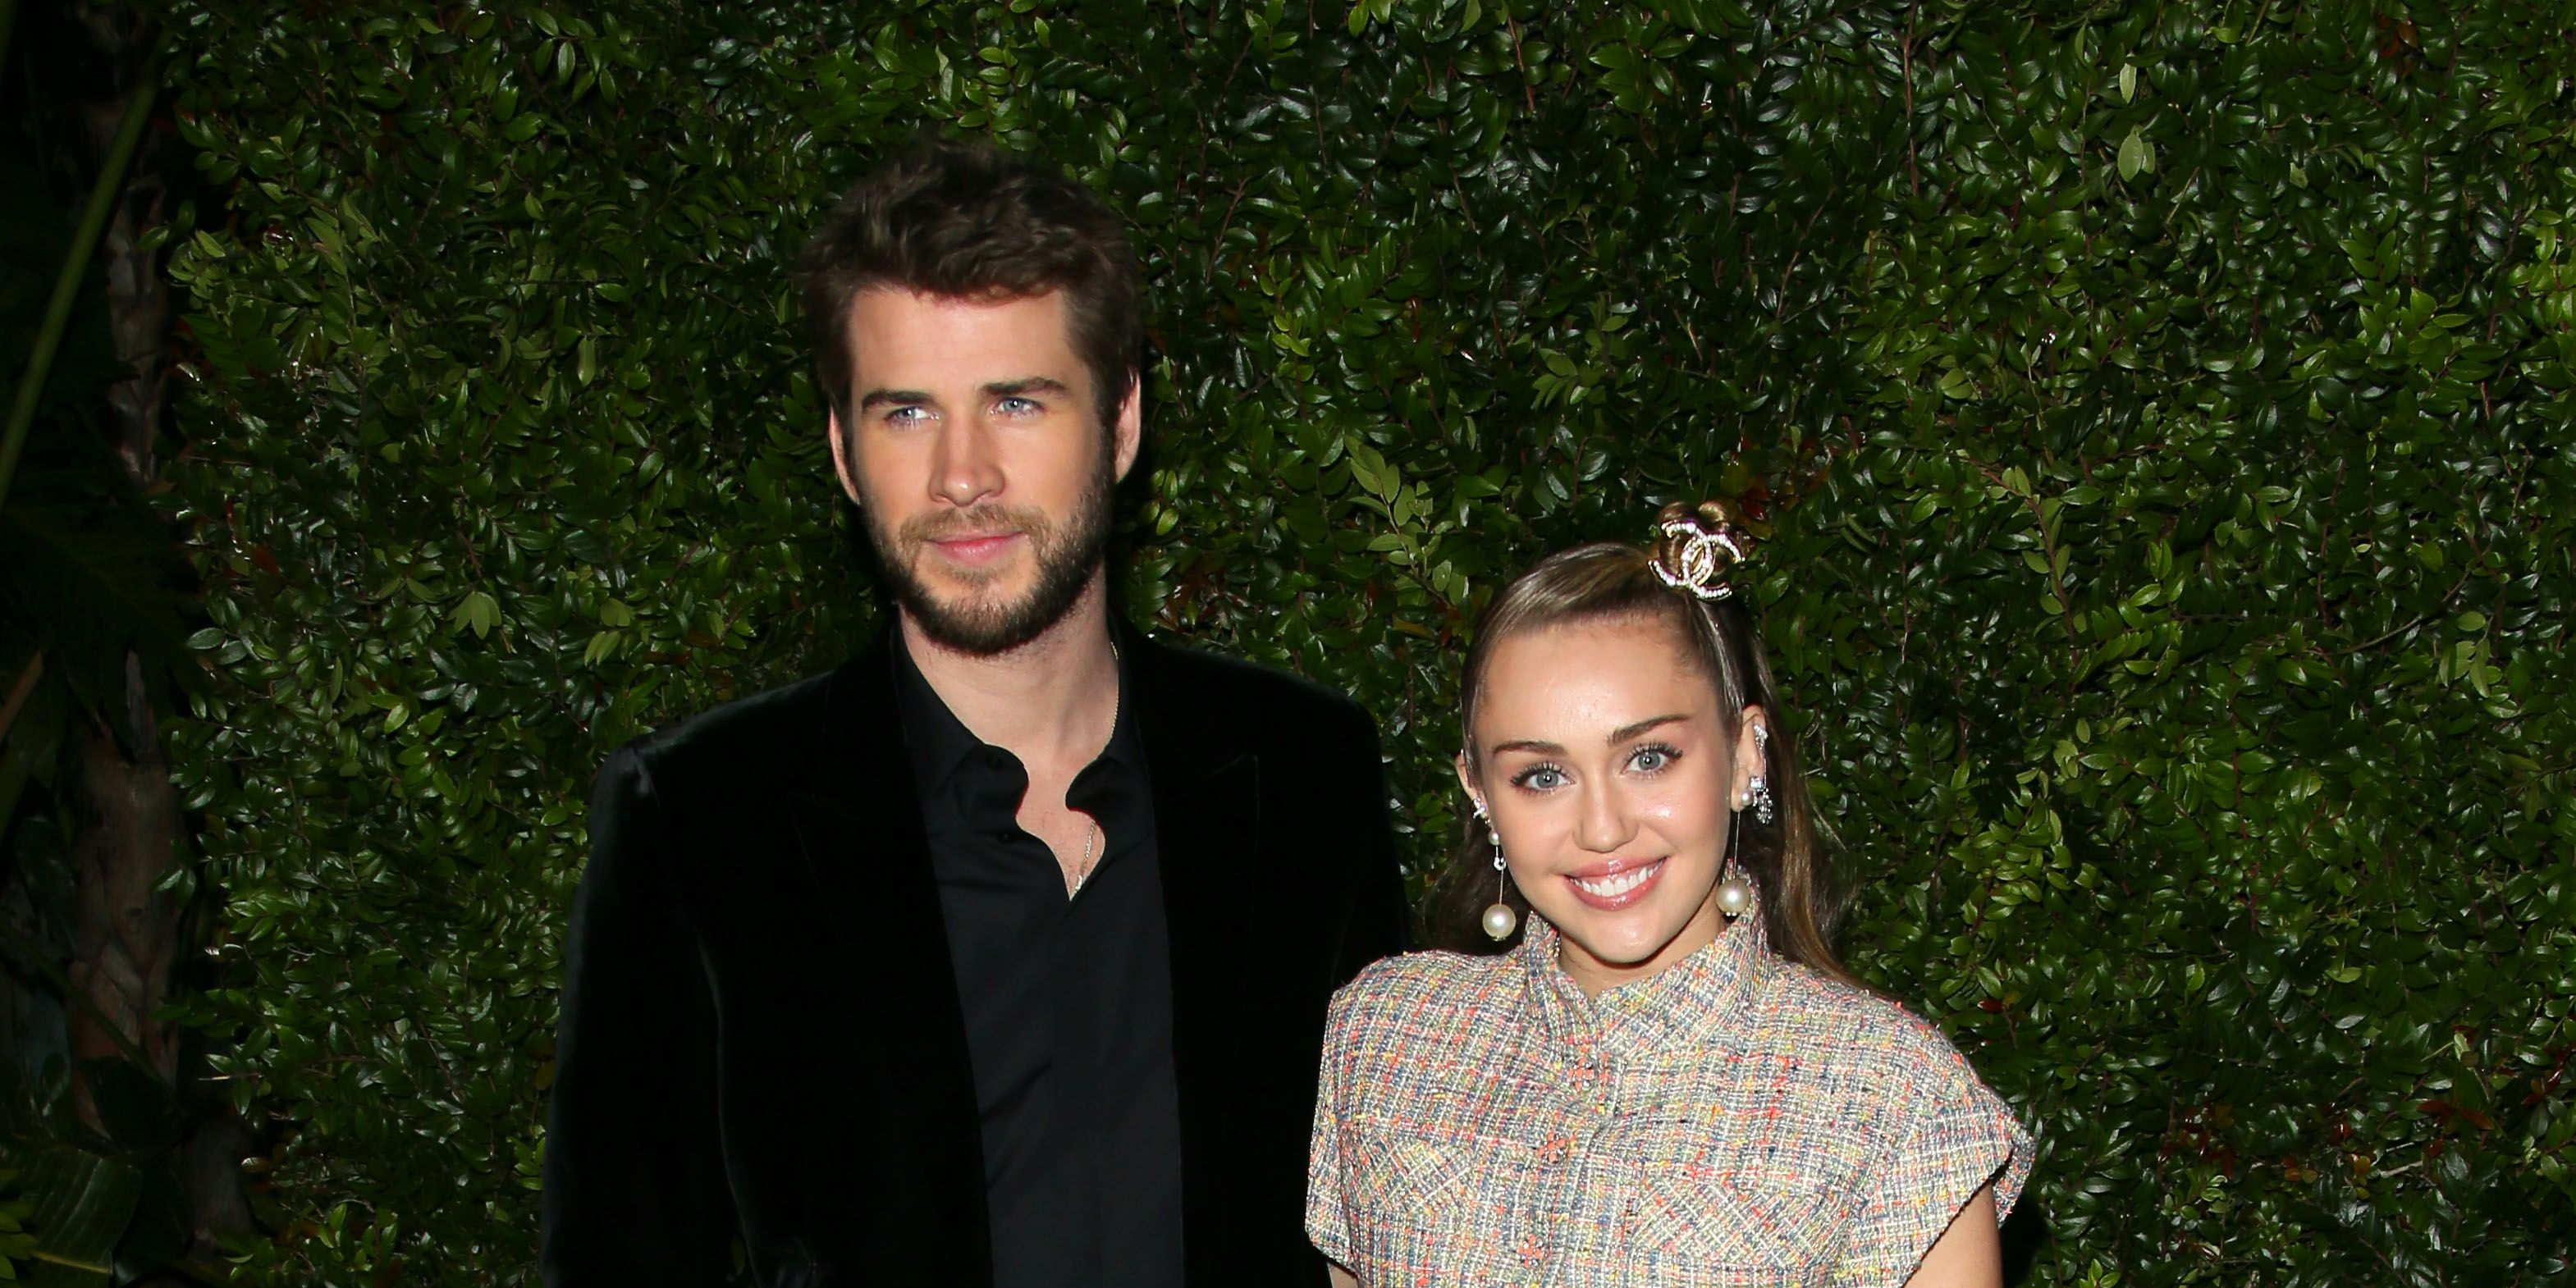 Miley Cyrus And Liam Hemsworth Chanel Pre-Oscars Party